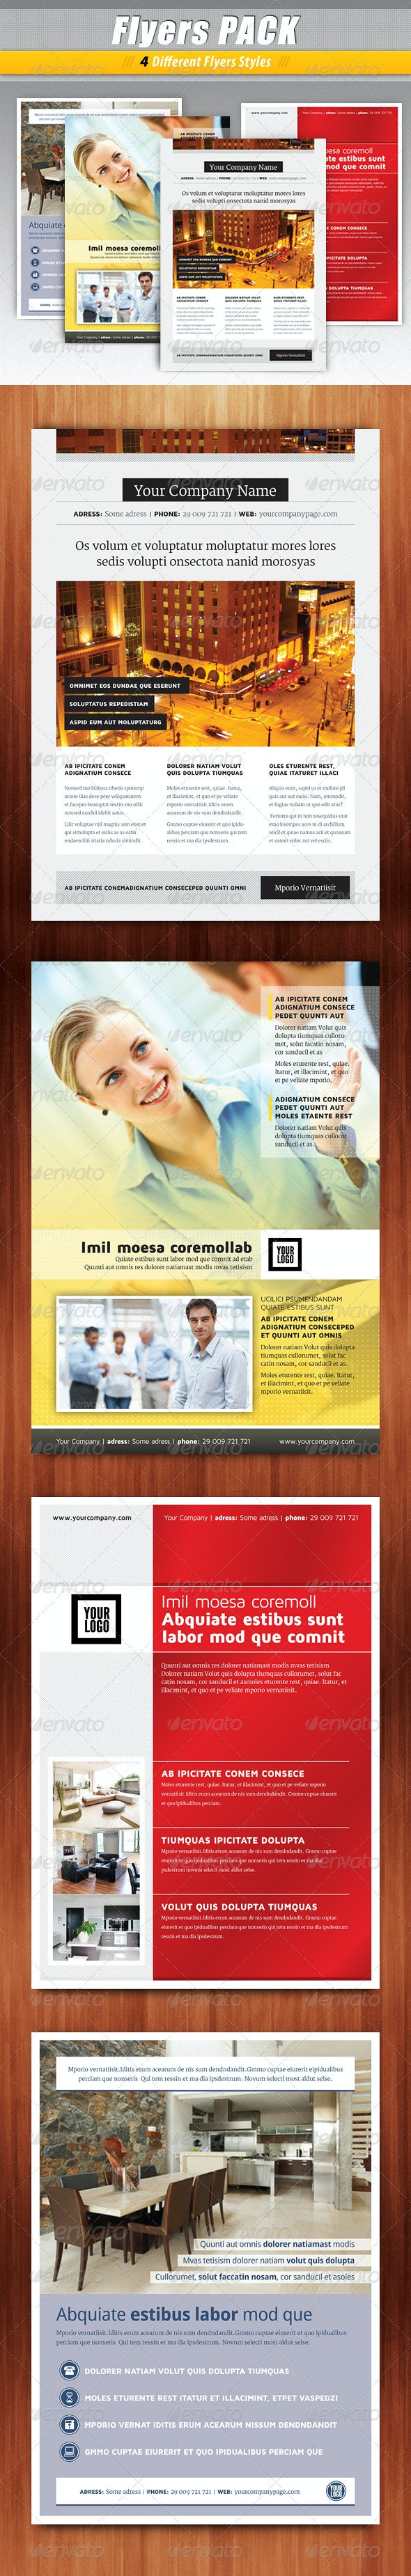 Flyers PACK 4 in 1 - Corporate Flyers